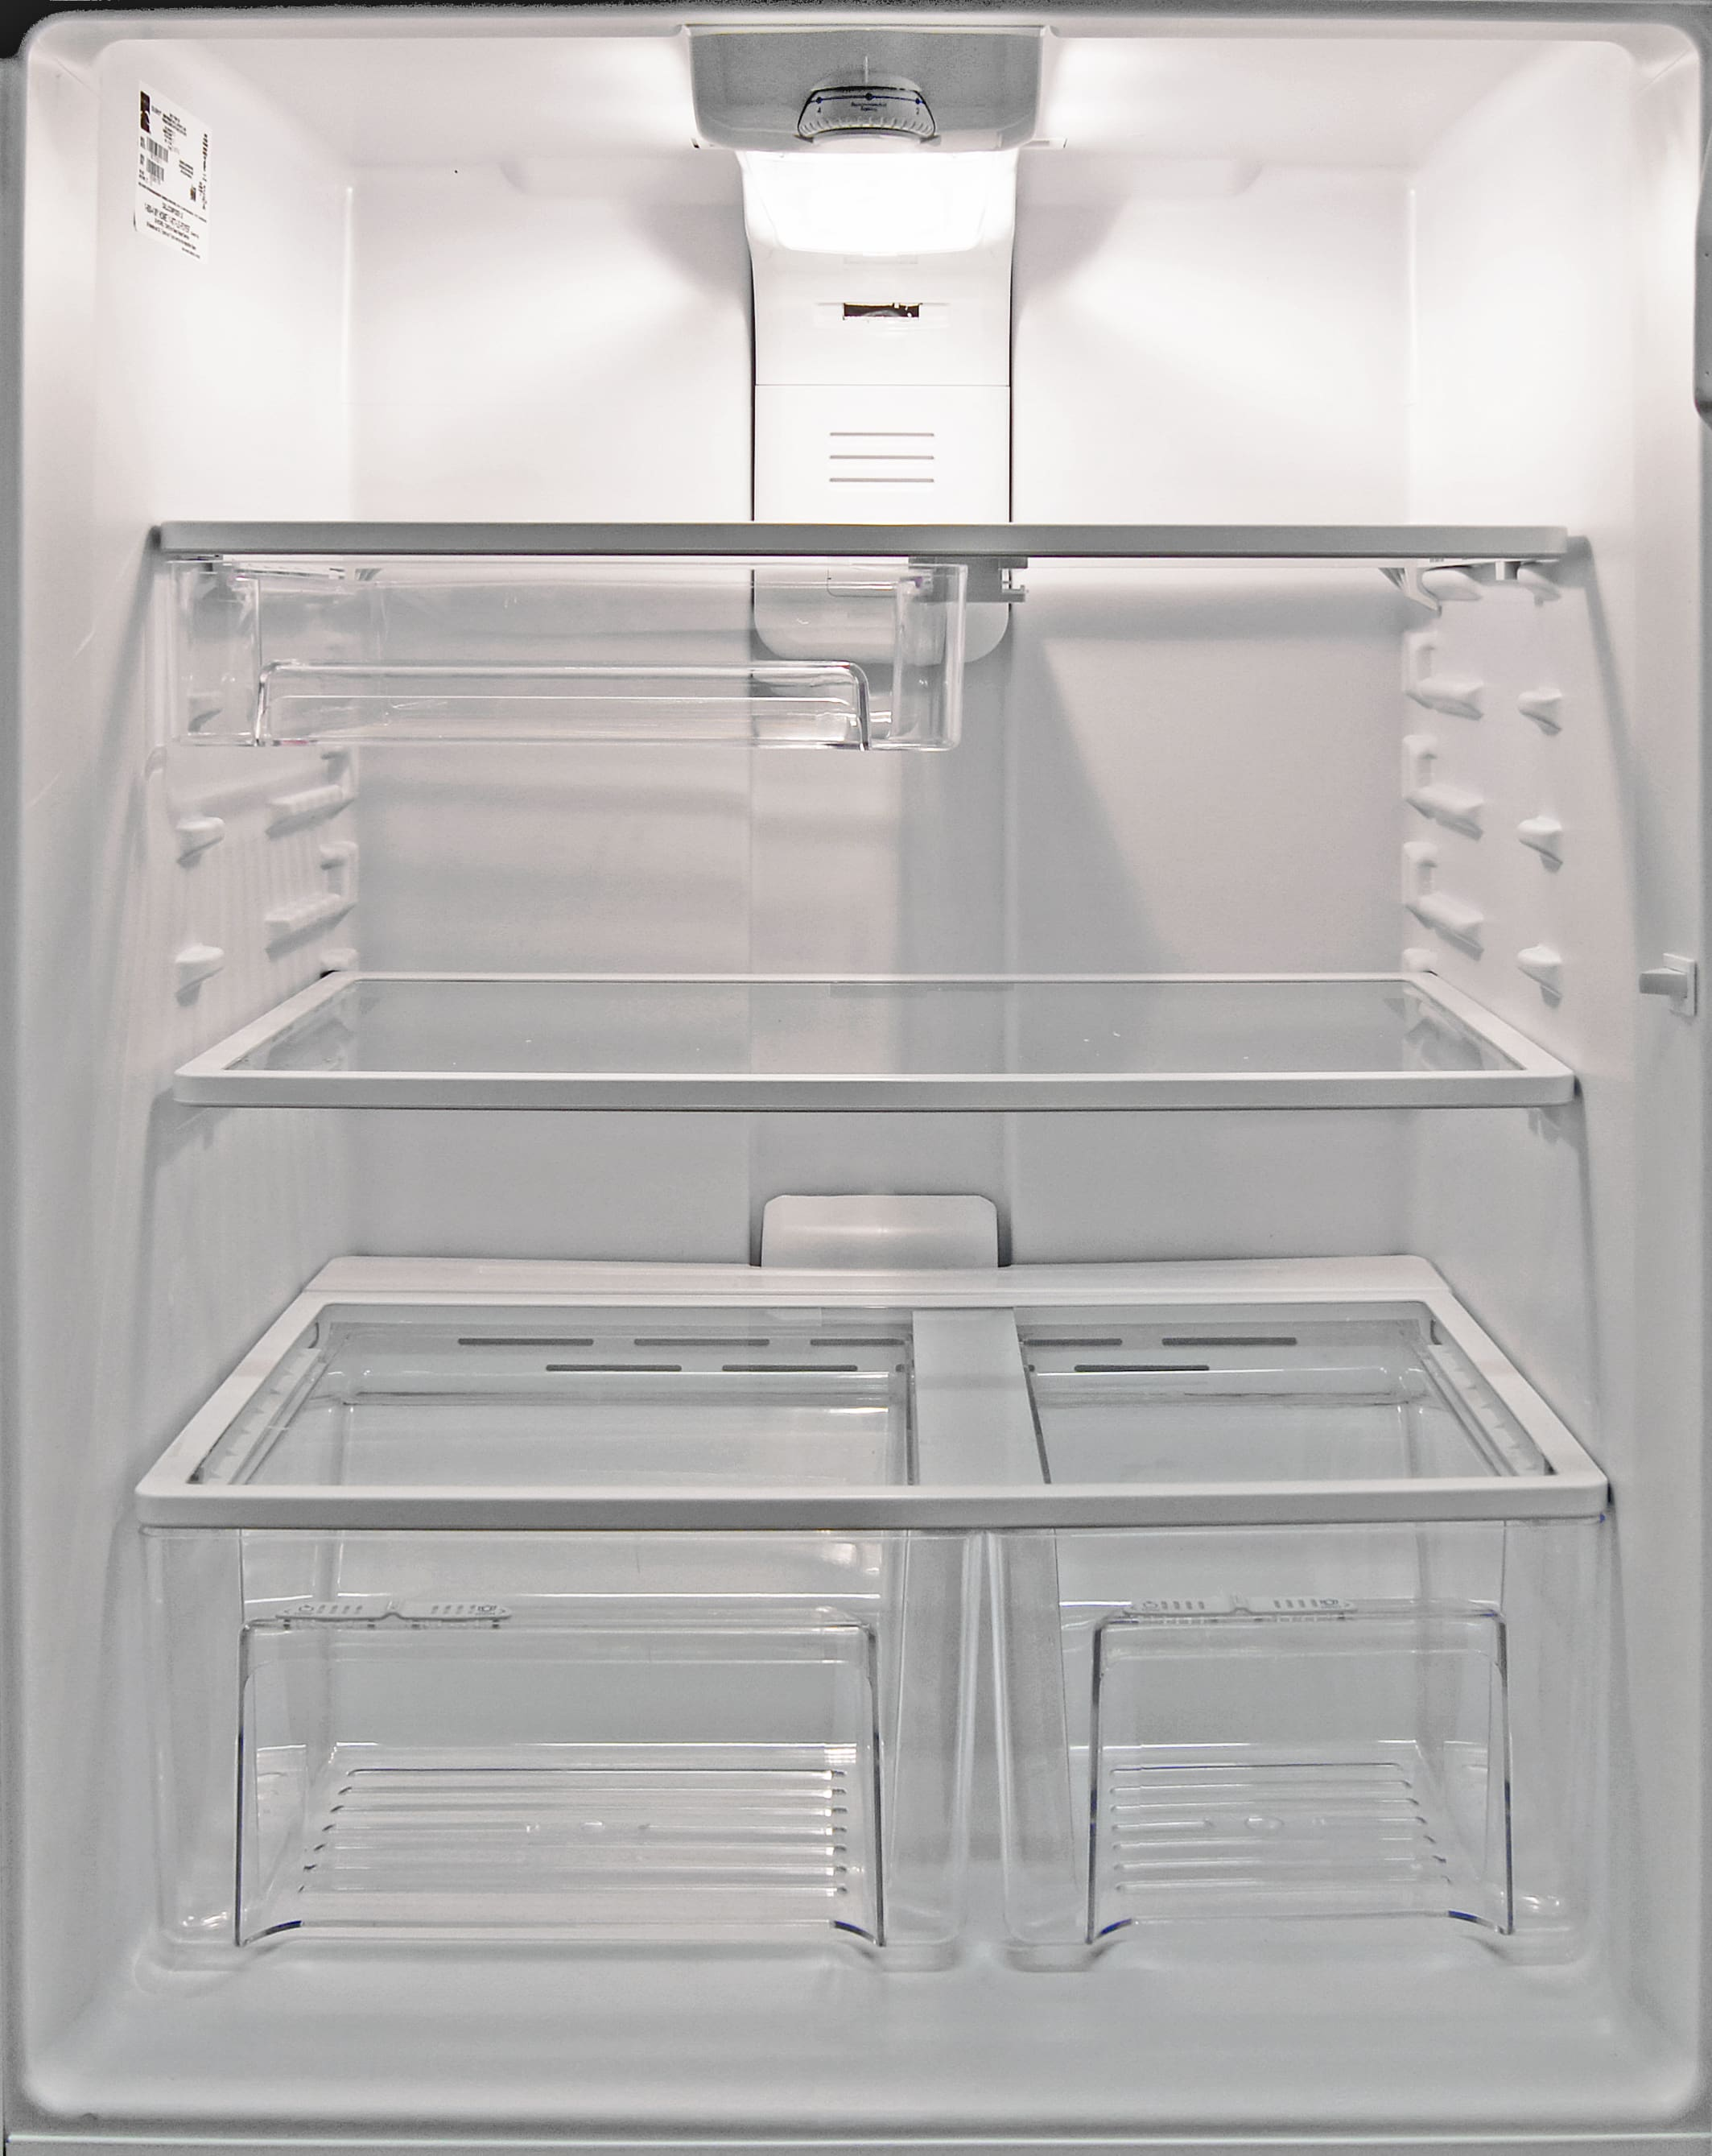 The shelves in the Kenmore 72152's main fridge compartment are very accessible.